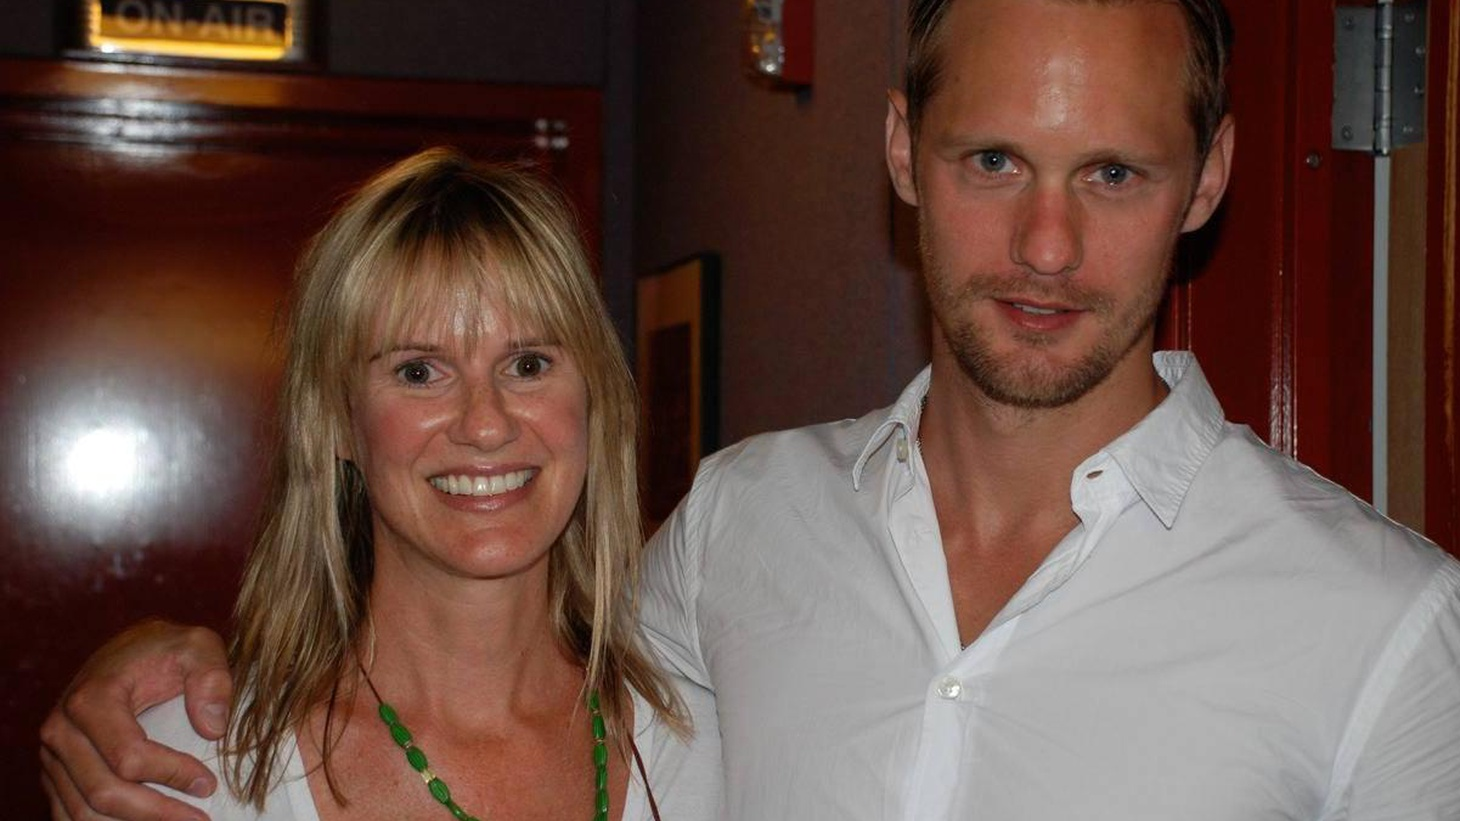 Swedish actor Alexander Skarsgard plays the powerful vampire Eric on HBO's series True Blood. His Guest DJ set was emotional and revealing as he chose to dedicate each of his five songs to people that play an important part in his life -- including his father, actor Stellan Skarsgard, a lost love and an old friend. True Blood's Season 2 finale airs September 13.